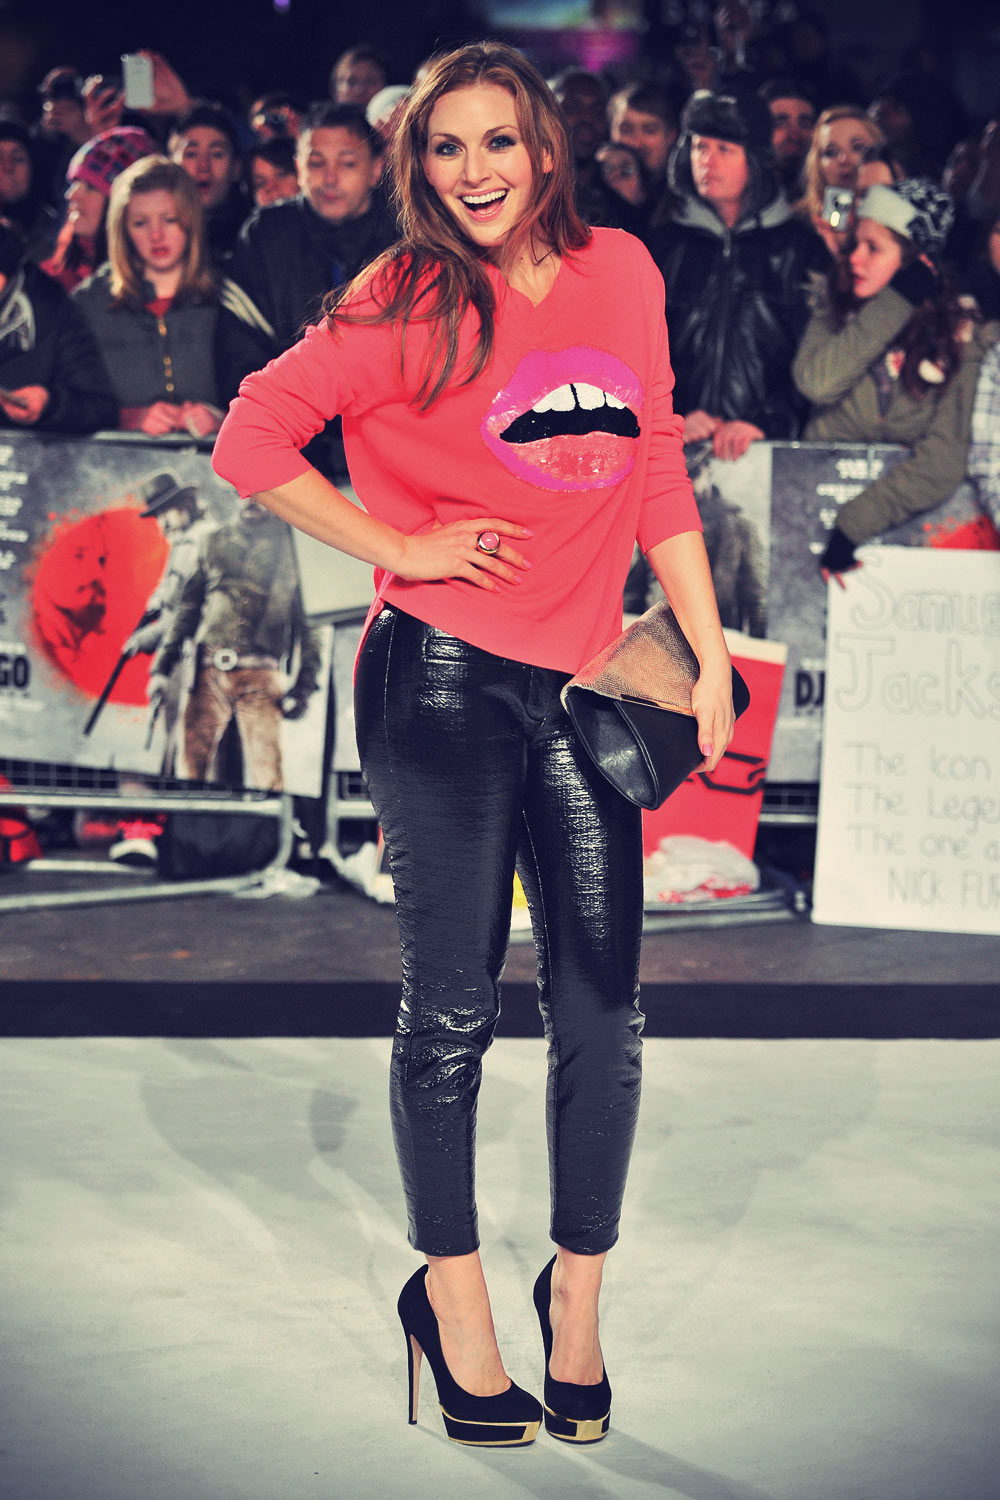 Olivia Lee attends The UK premiere of Django Unchained